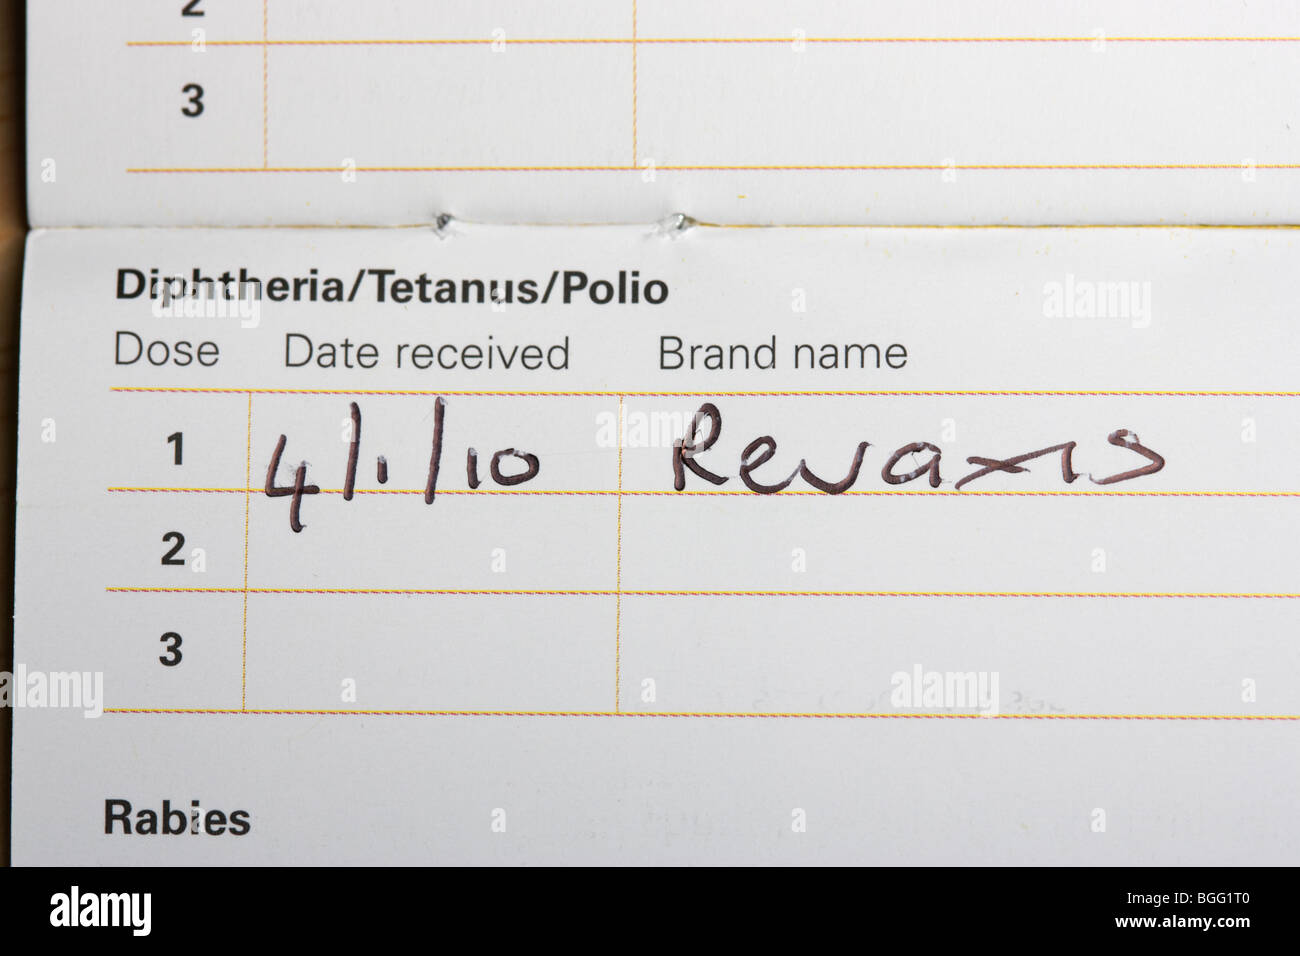 handwritten entry in a vaccinations leaflet with date of dose of Revaxis for Diphtheria Tetanus and Polio immunisation - Stock Image